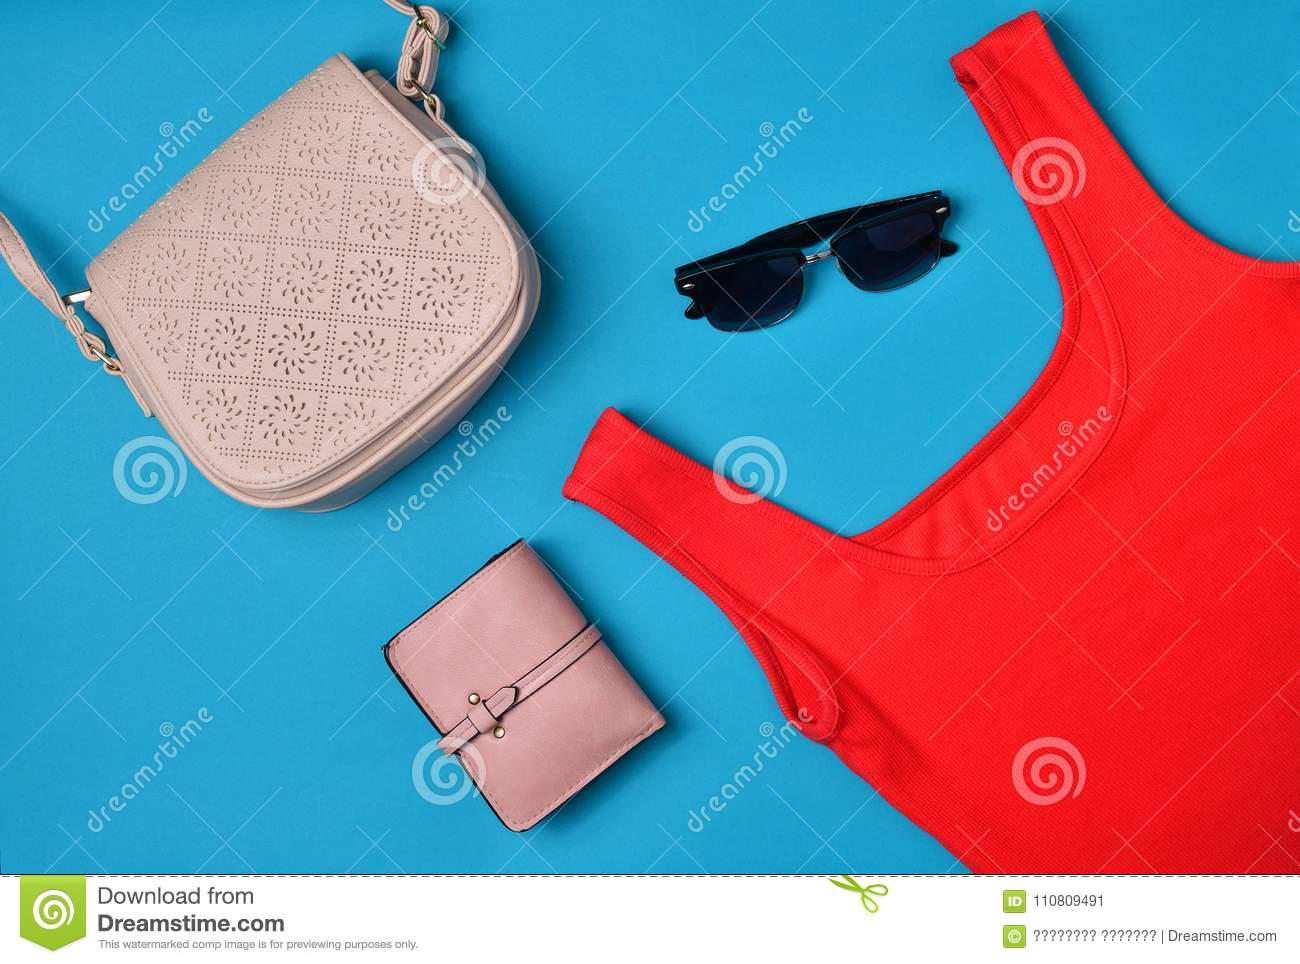 Women& x27;s clothing and accessories laid out on a blue background. Red T-shirt, purse, bag, sunglasses Top View. Flat lay